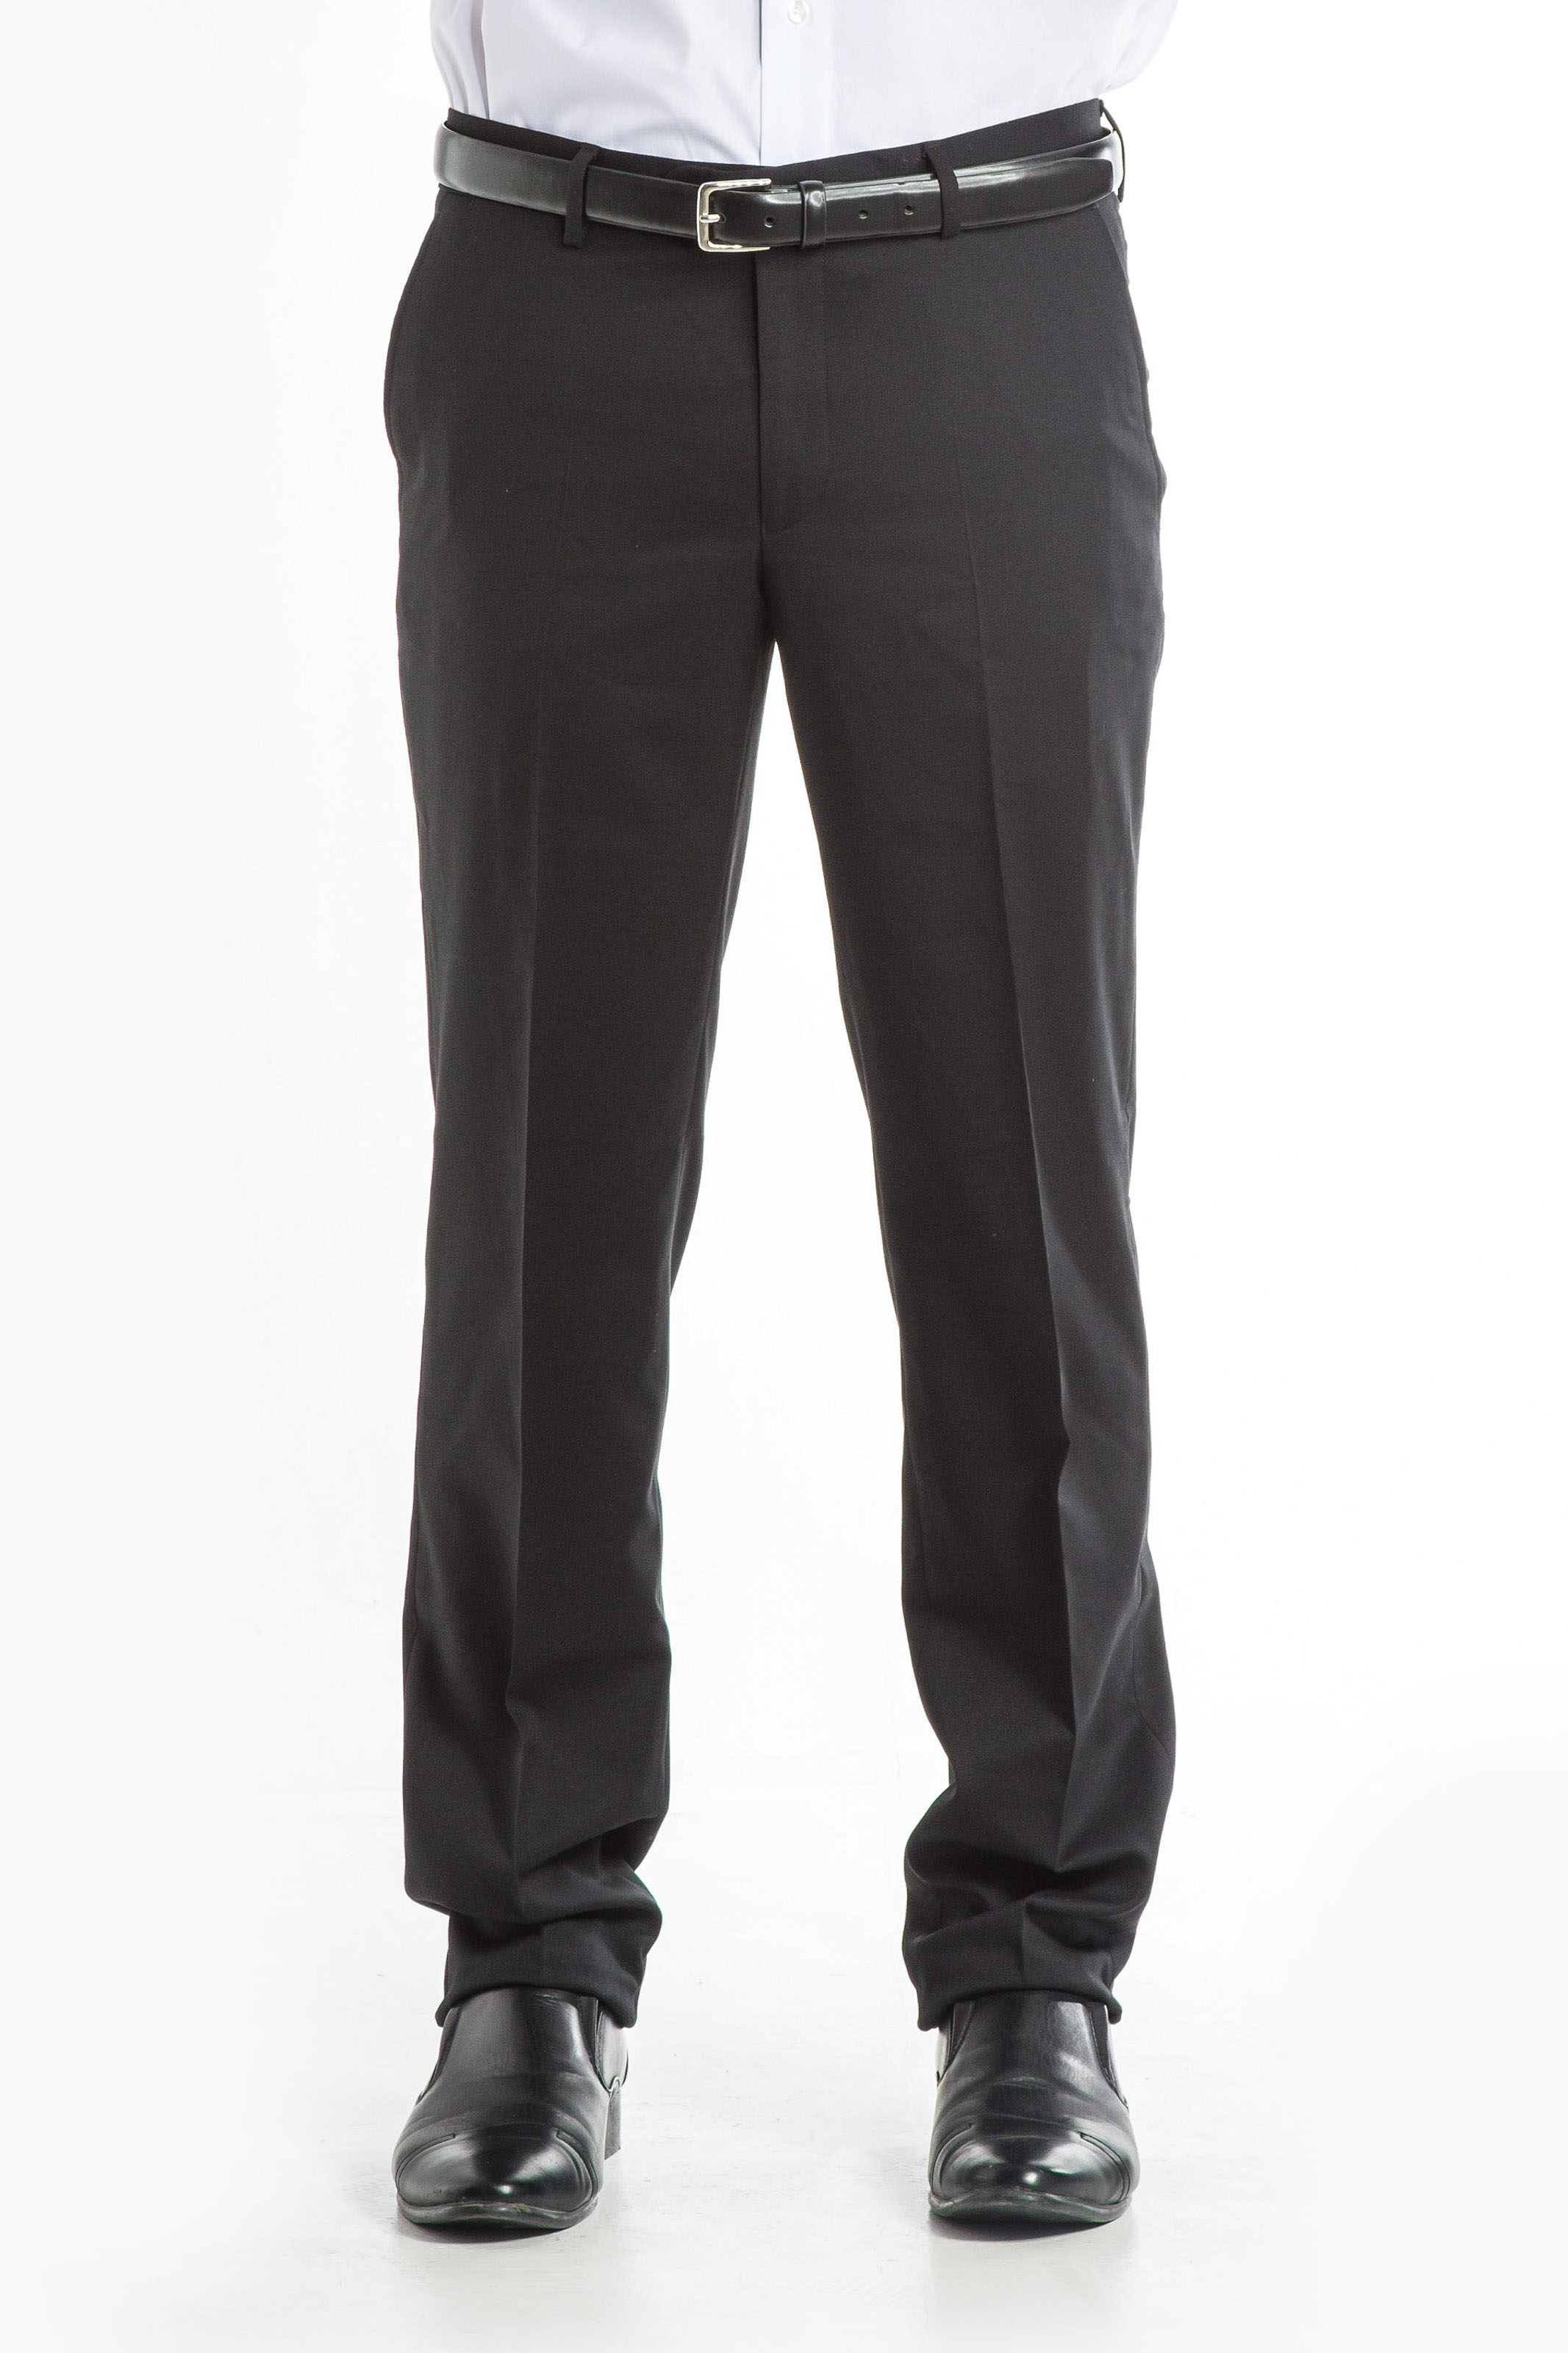 Aris Uniforms-MT06-City Men's Trouser